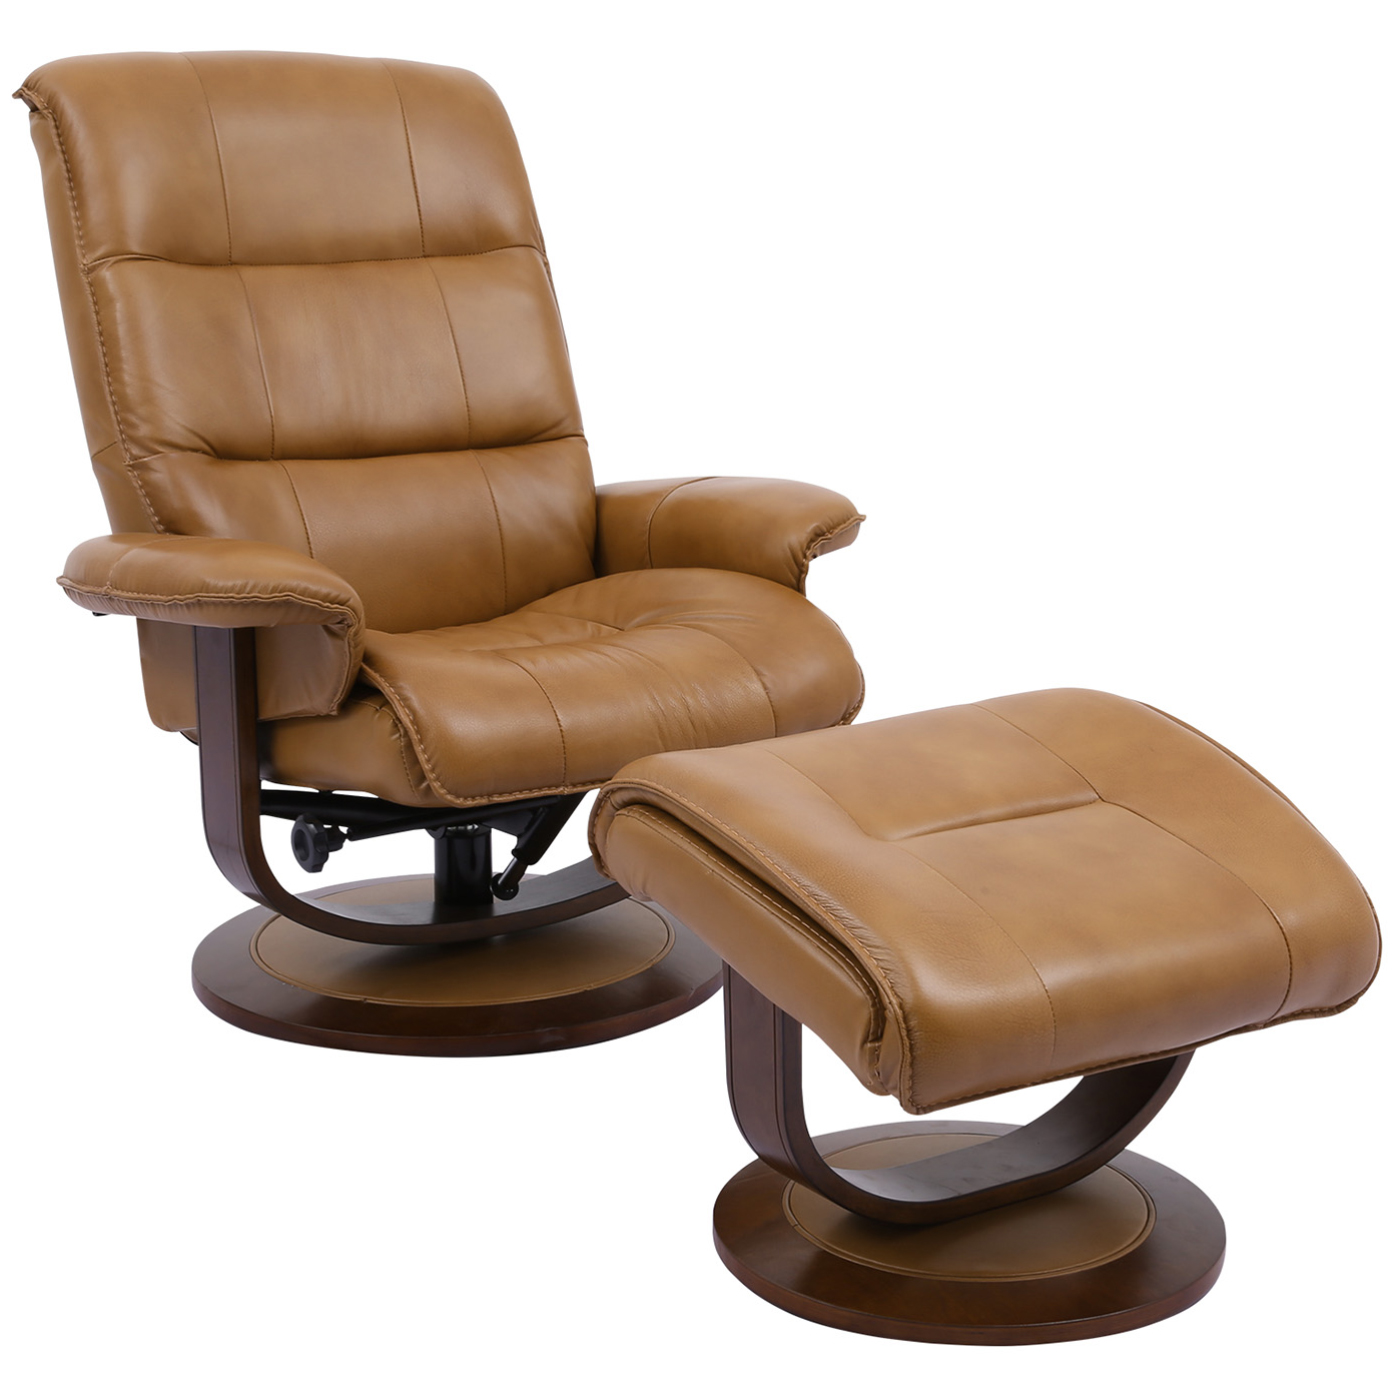 Knight Manual Reclining Swivel Chair Ottoman In Caramel Brown Top Grain Leather By Parker House